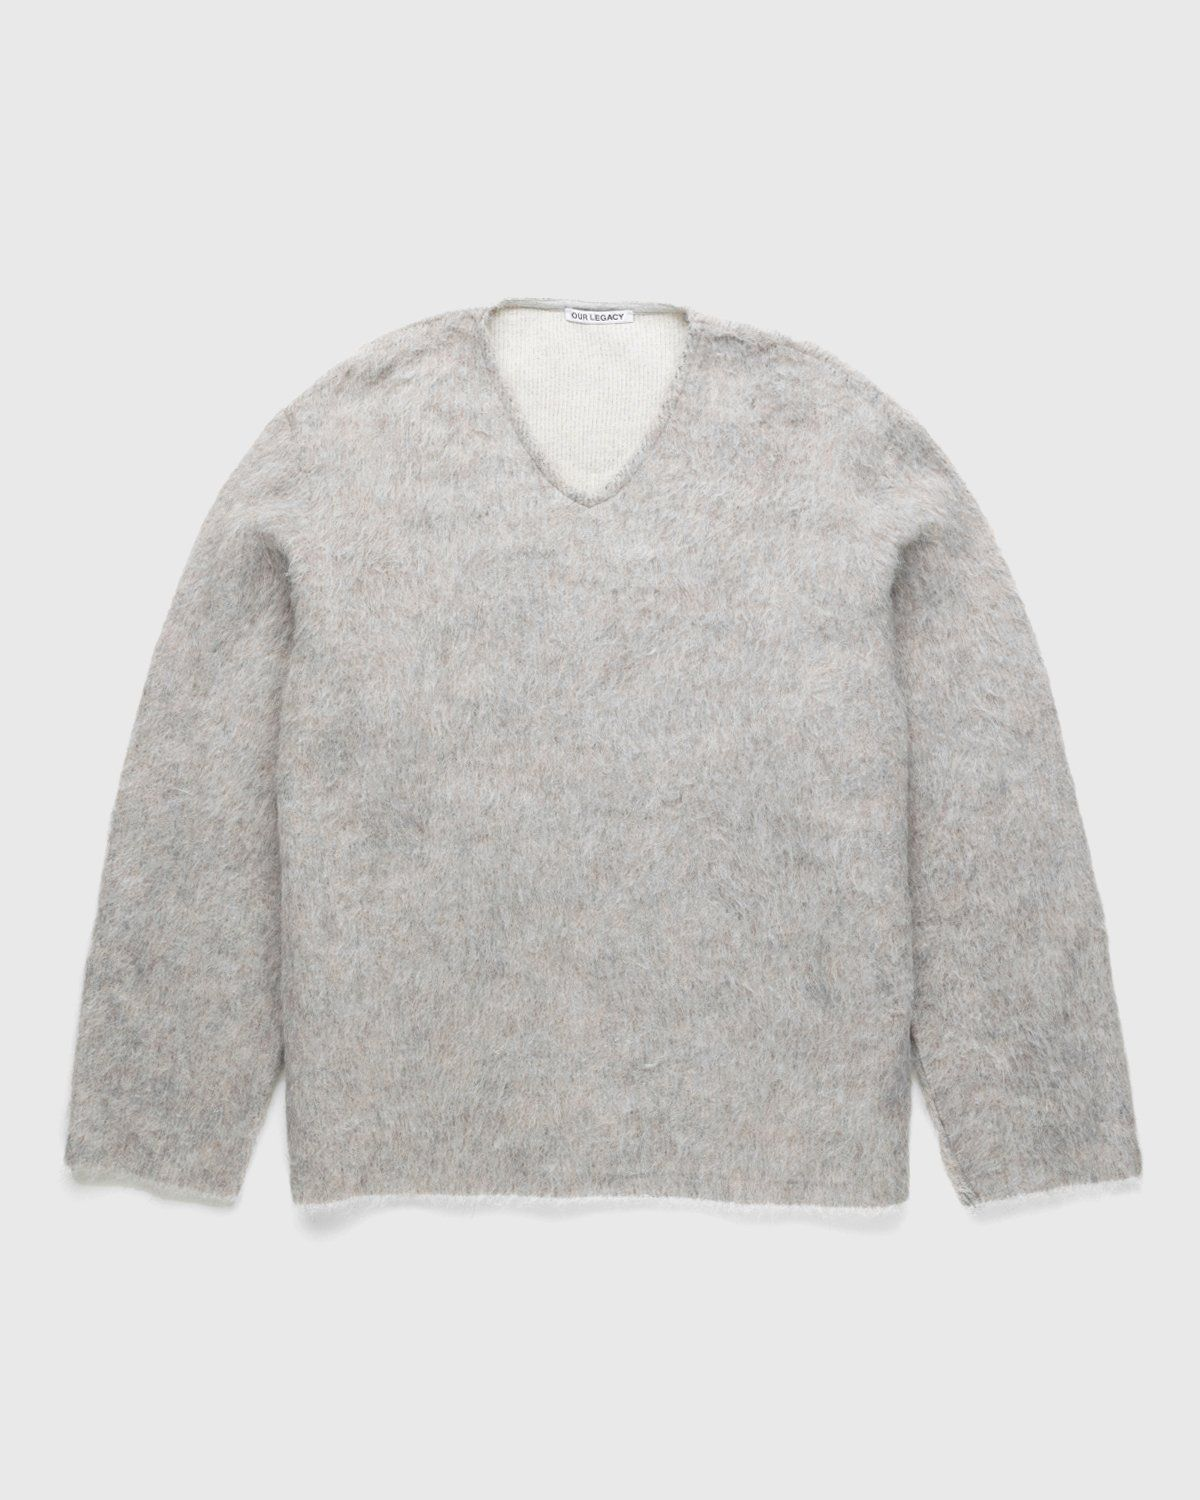 Our Legacy - Double Lock Sweater Grey Alpaca - Image 1